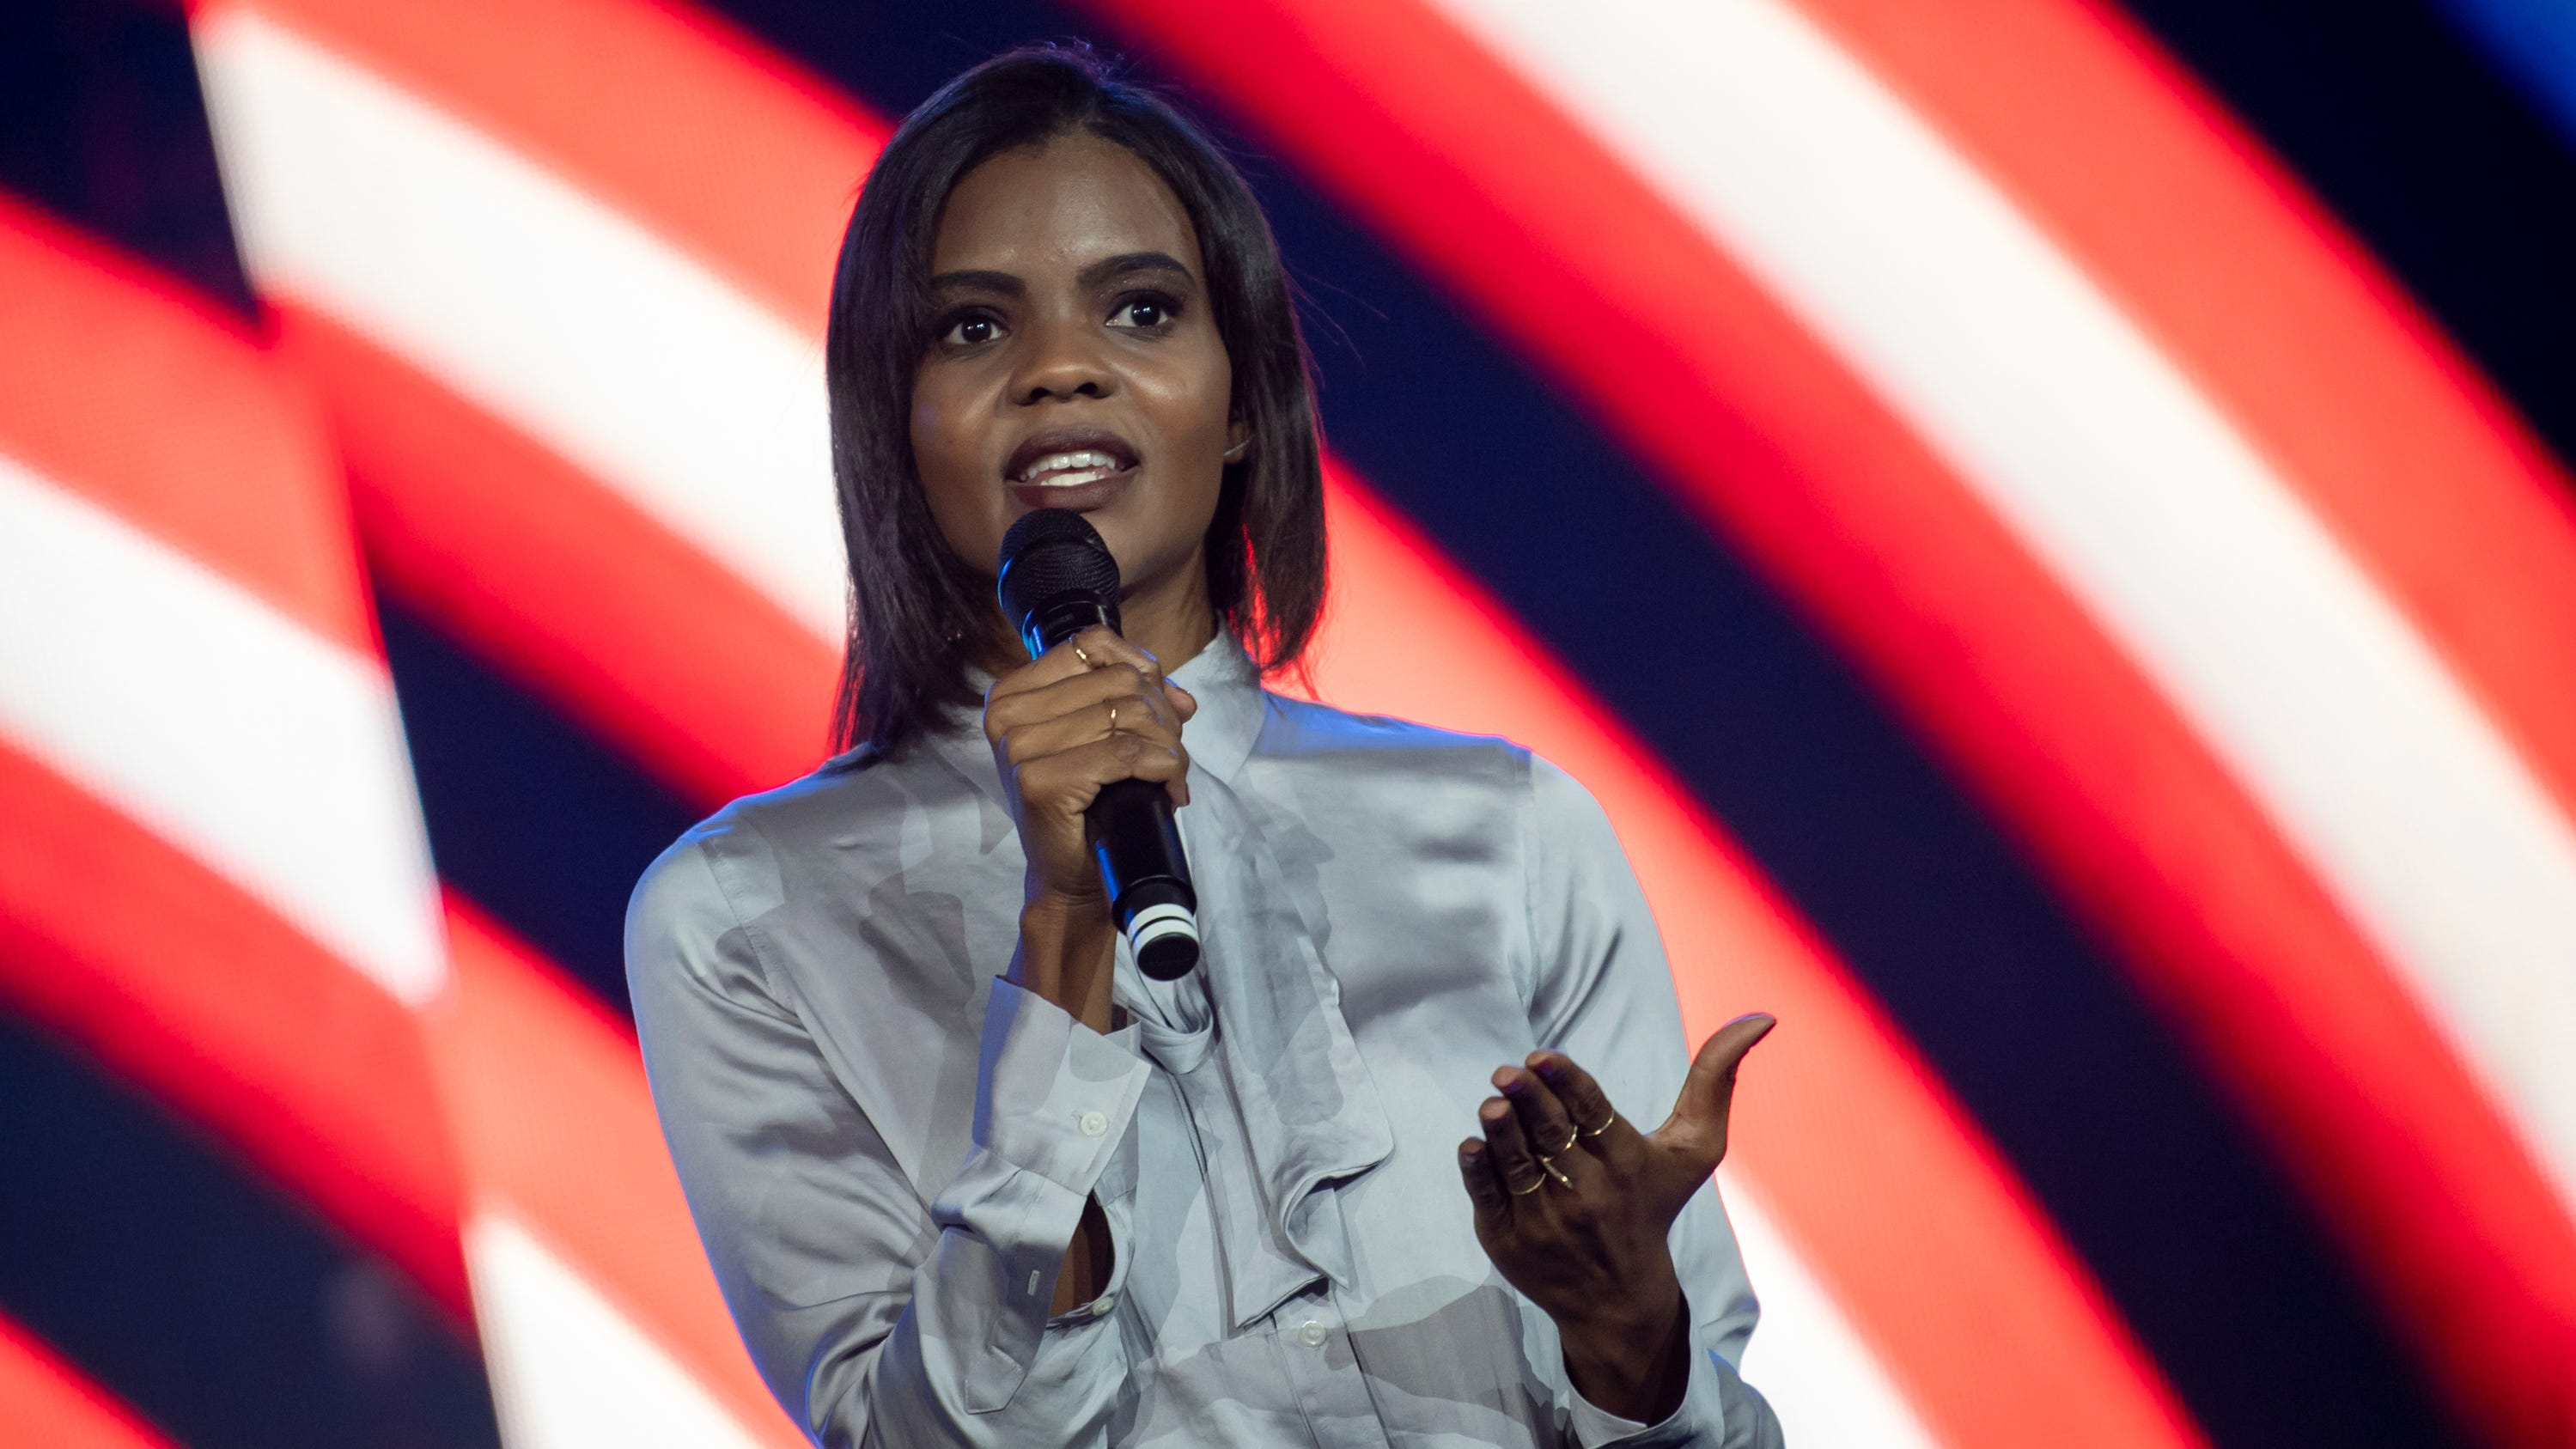 "Candace Owens often tells a story from high school where a group of boys left voicemails on her phone where they made threats and called her racial slurs. It affected her personally and later, politically. She now preaches against victimhood, especially among African Americans. Here she is speaking to students at Liberty University on Sept. 26. ""I had no interest in politics whatsoever prior to 2015,"" she said."